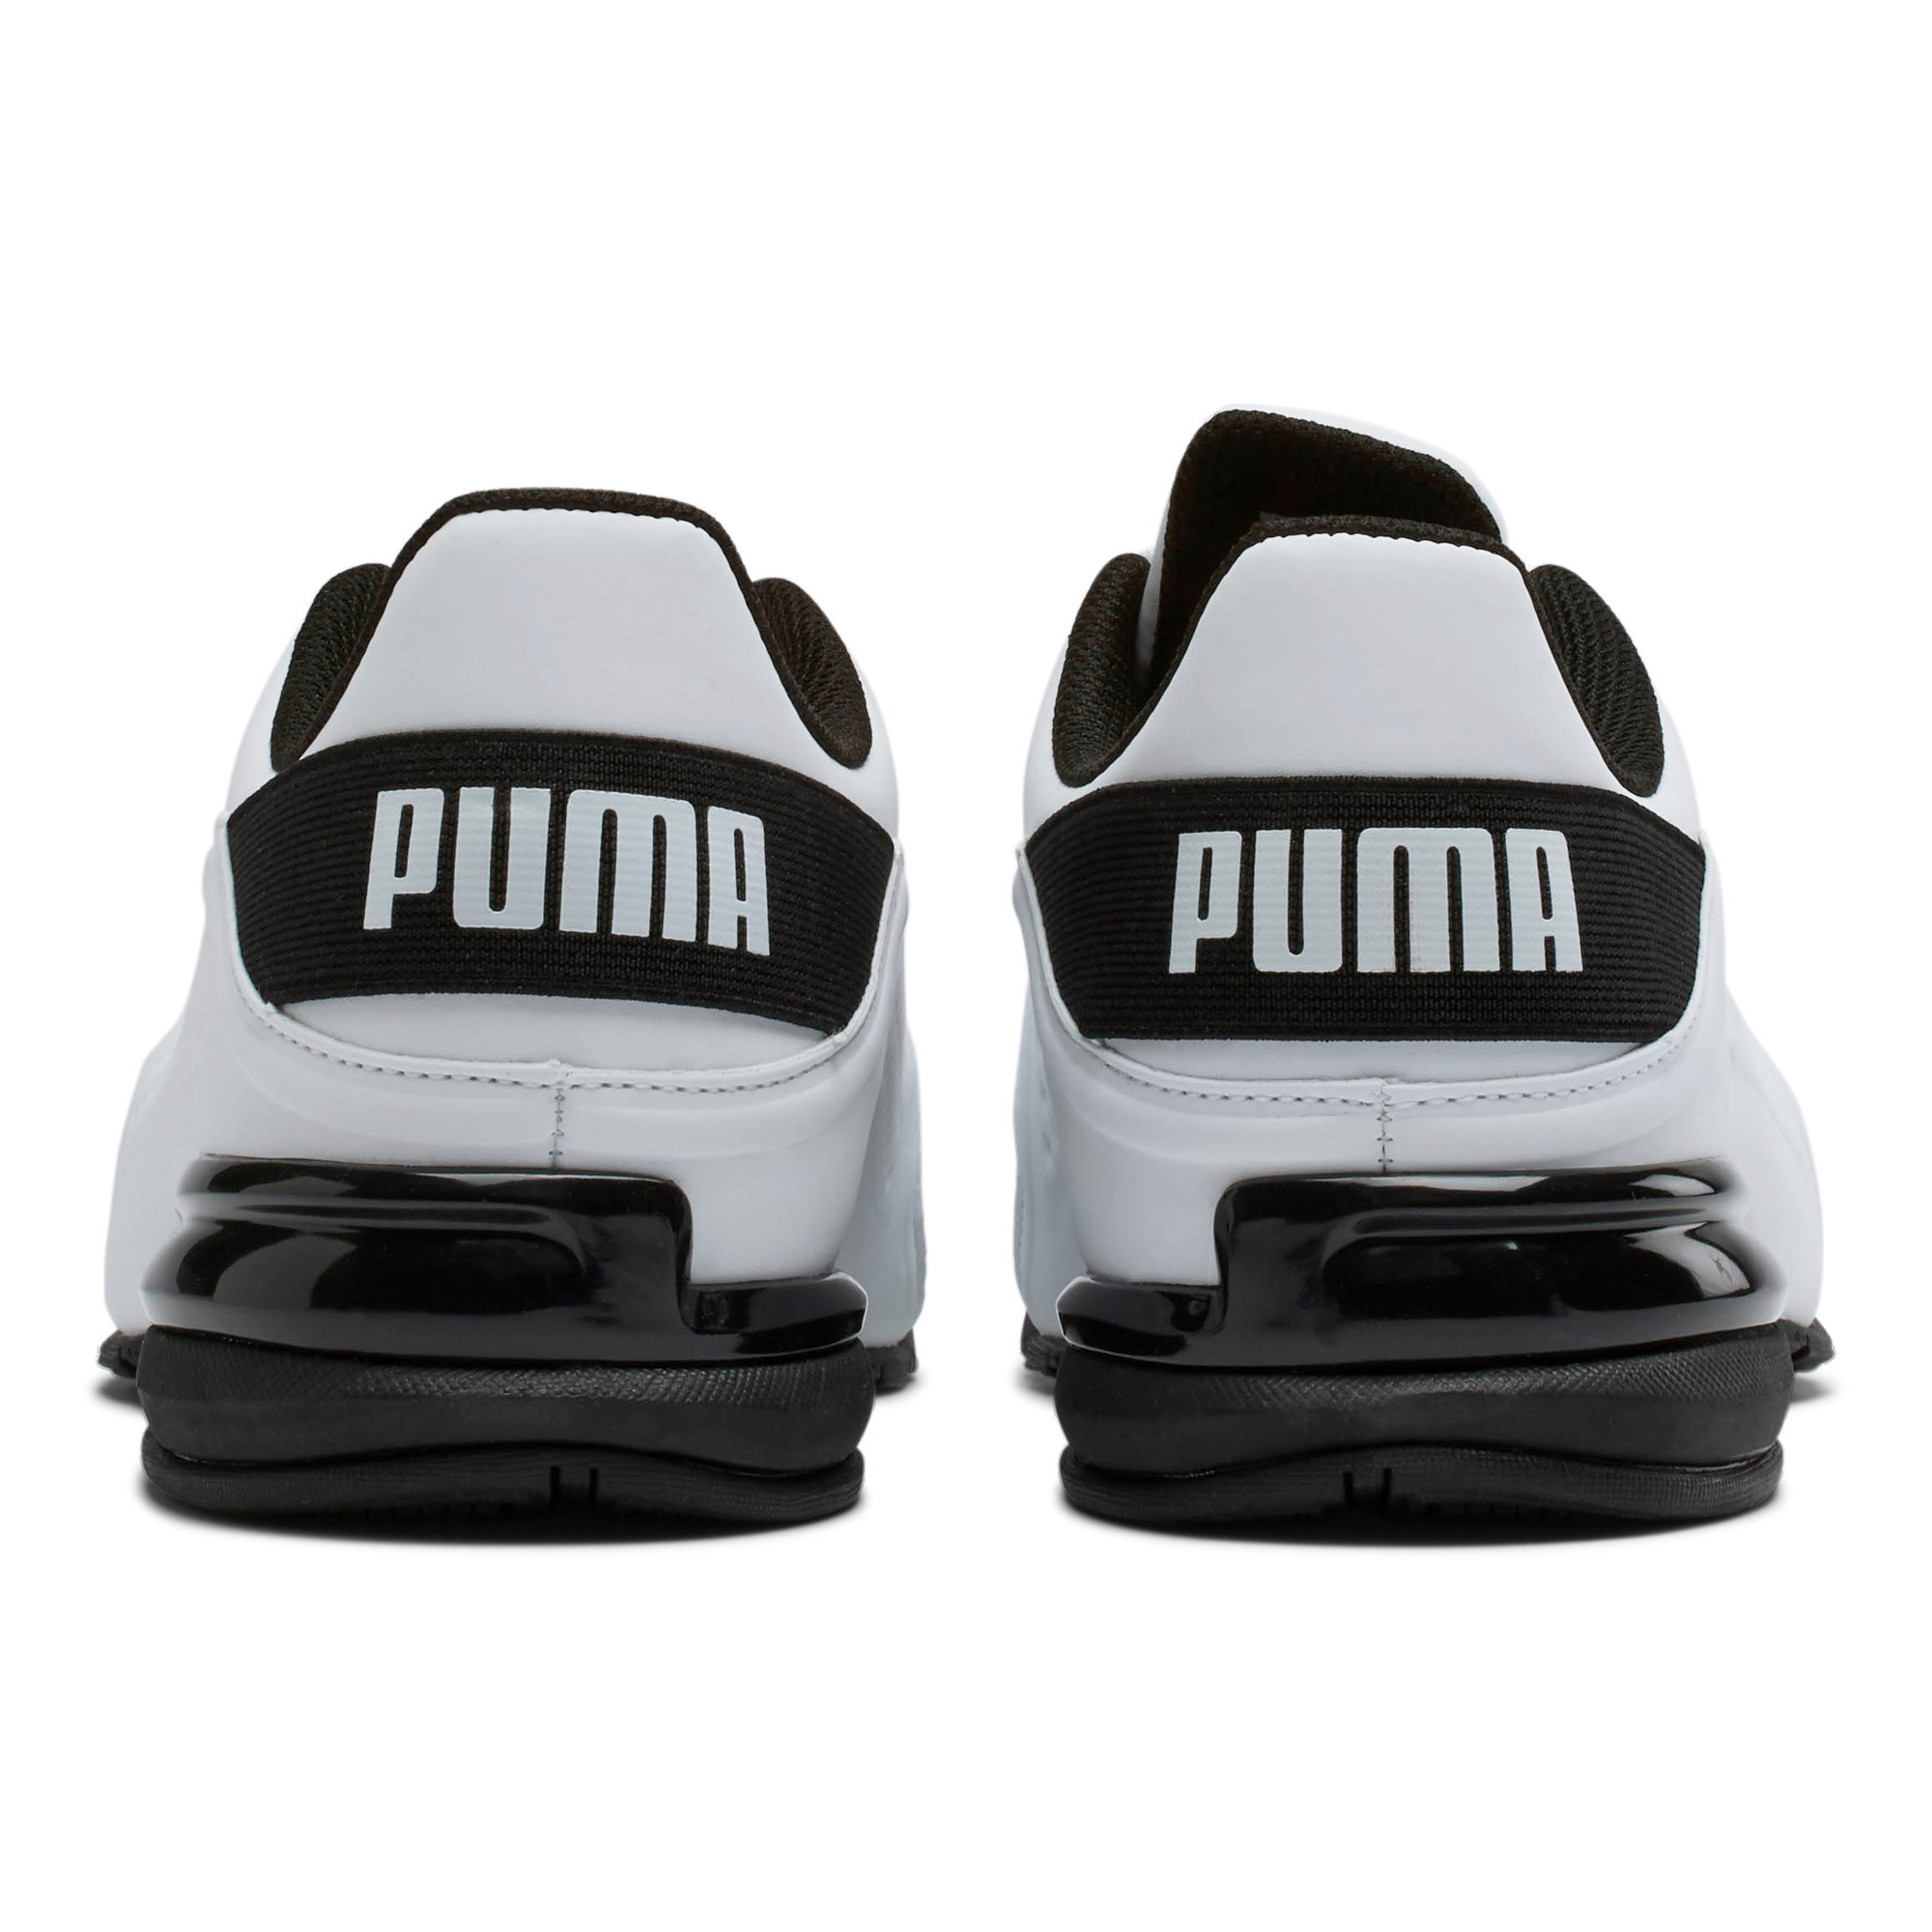 PUMA-Men-039-s-Viz-Runner-Training-Shoes thumbnail 9